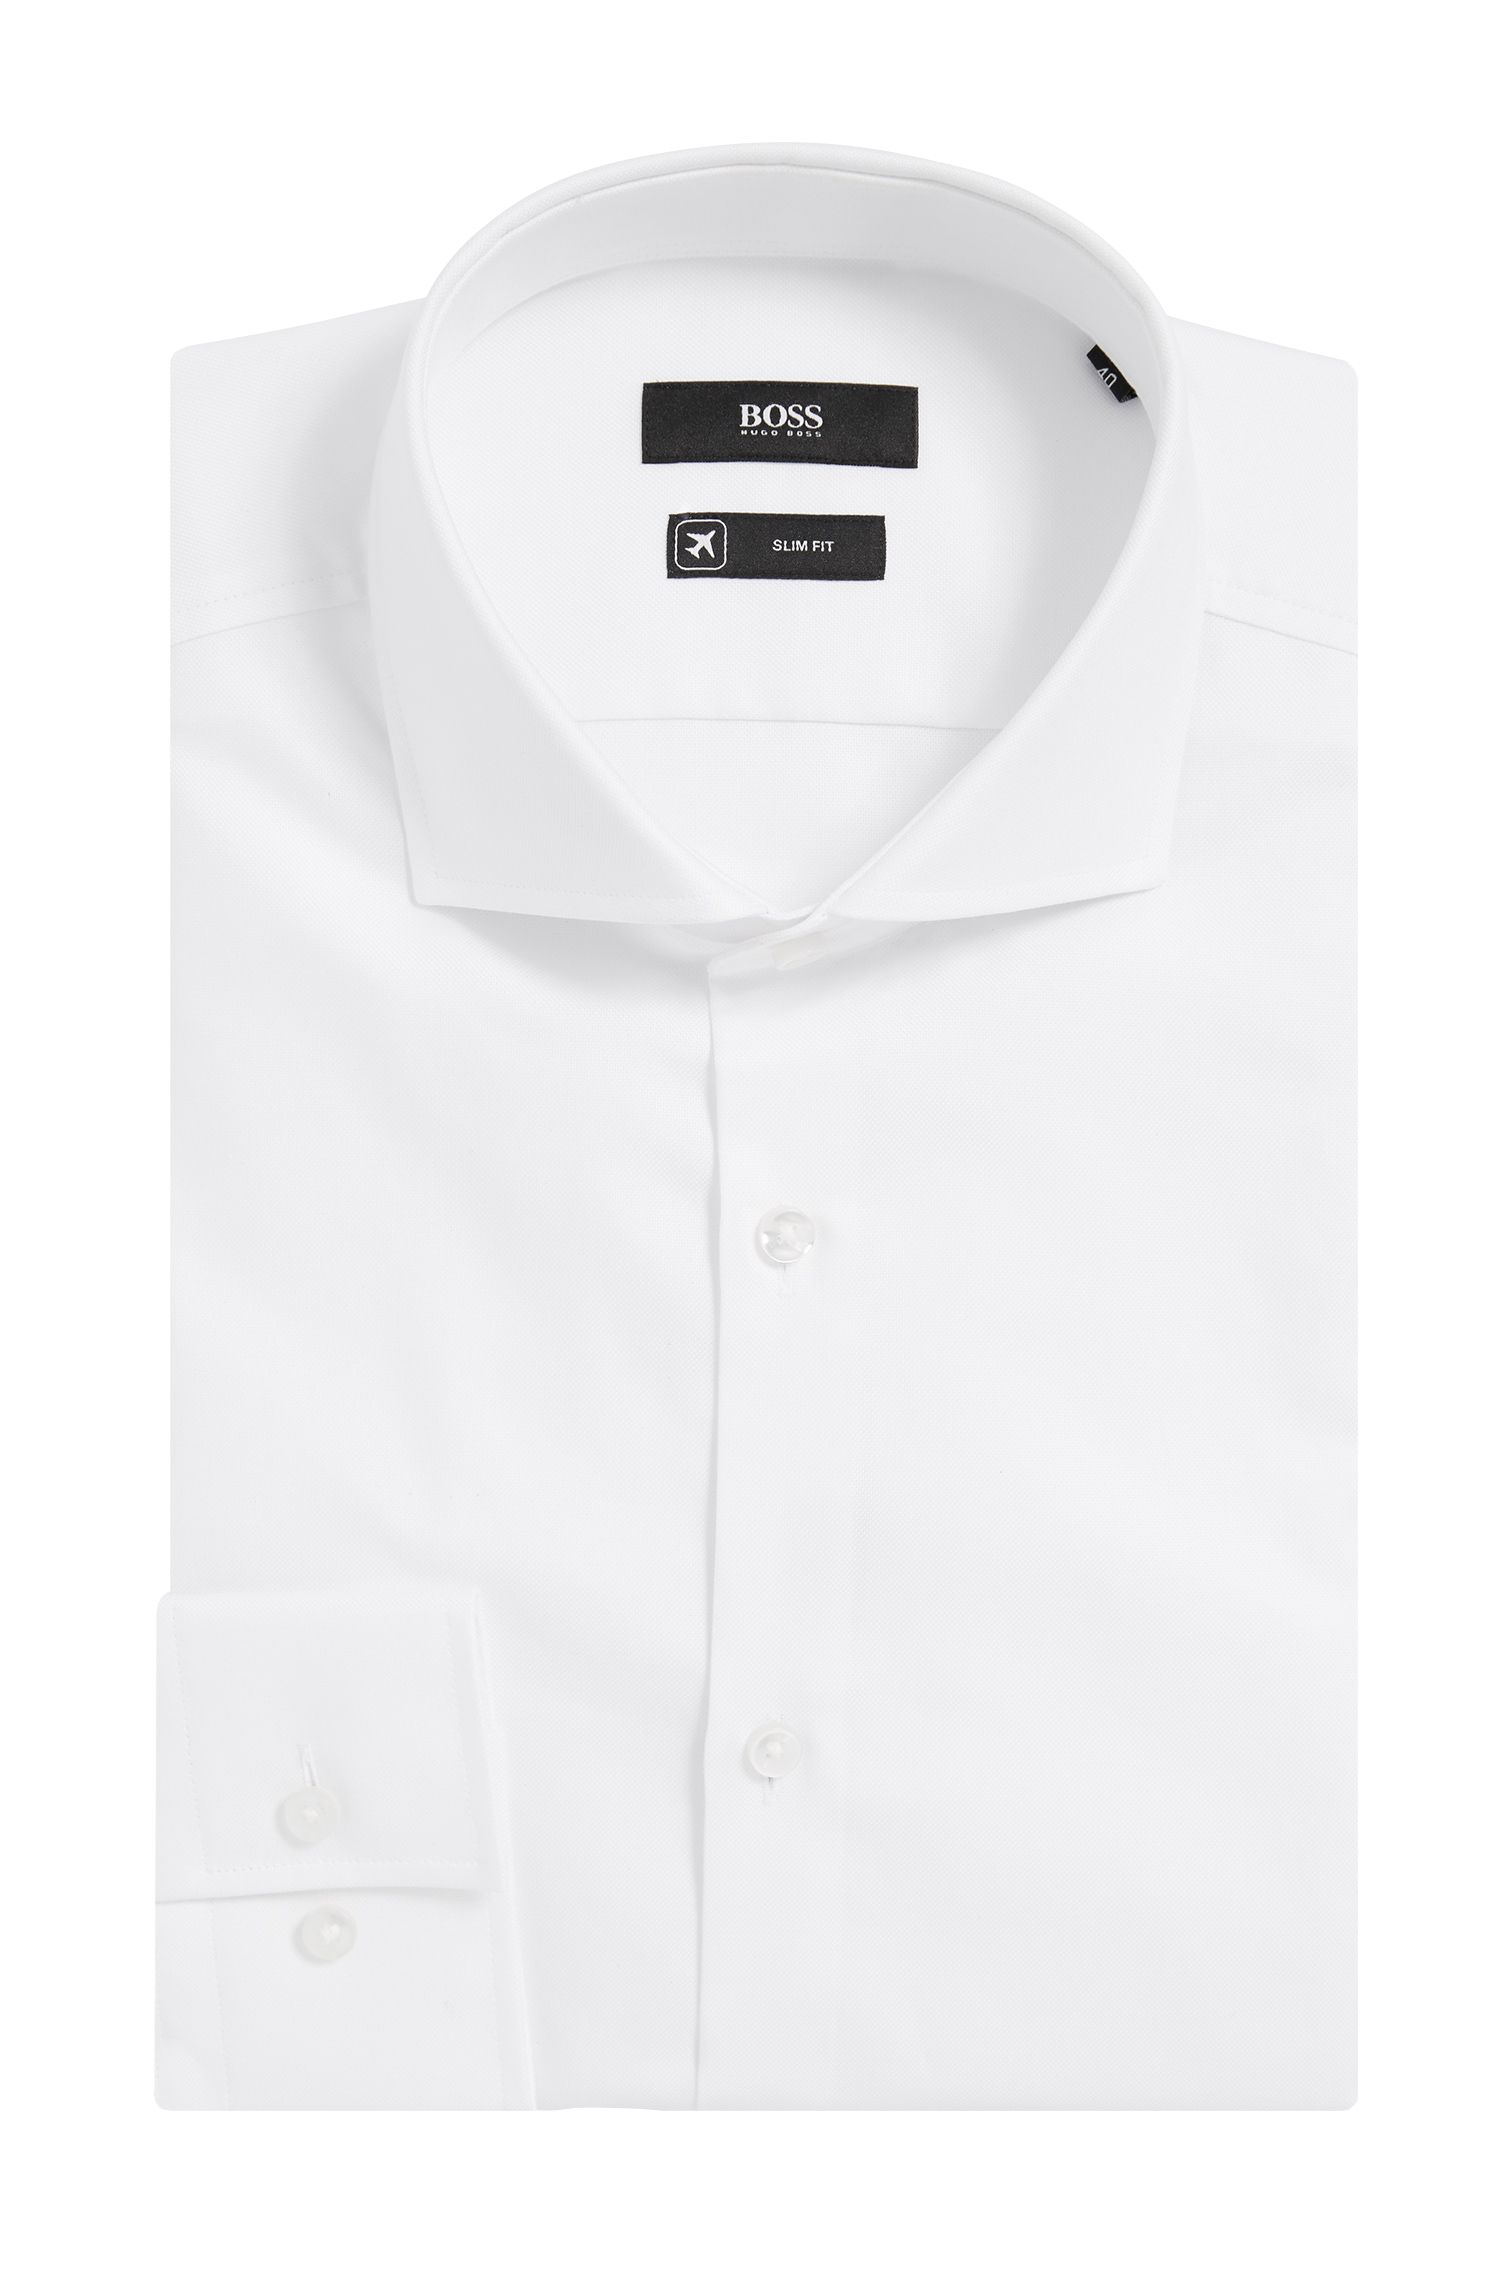 'Jason' | Slim Fit, Fresh Active Traveler Dress Shirt